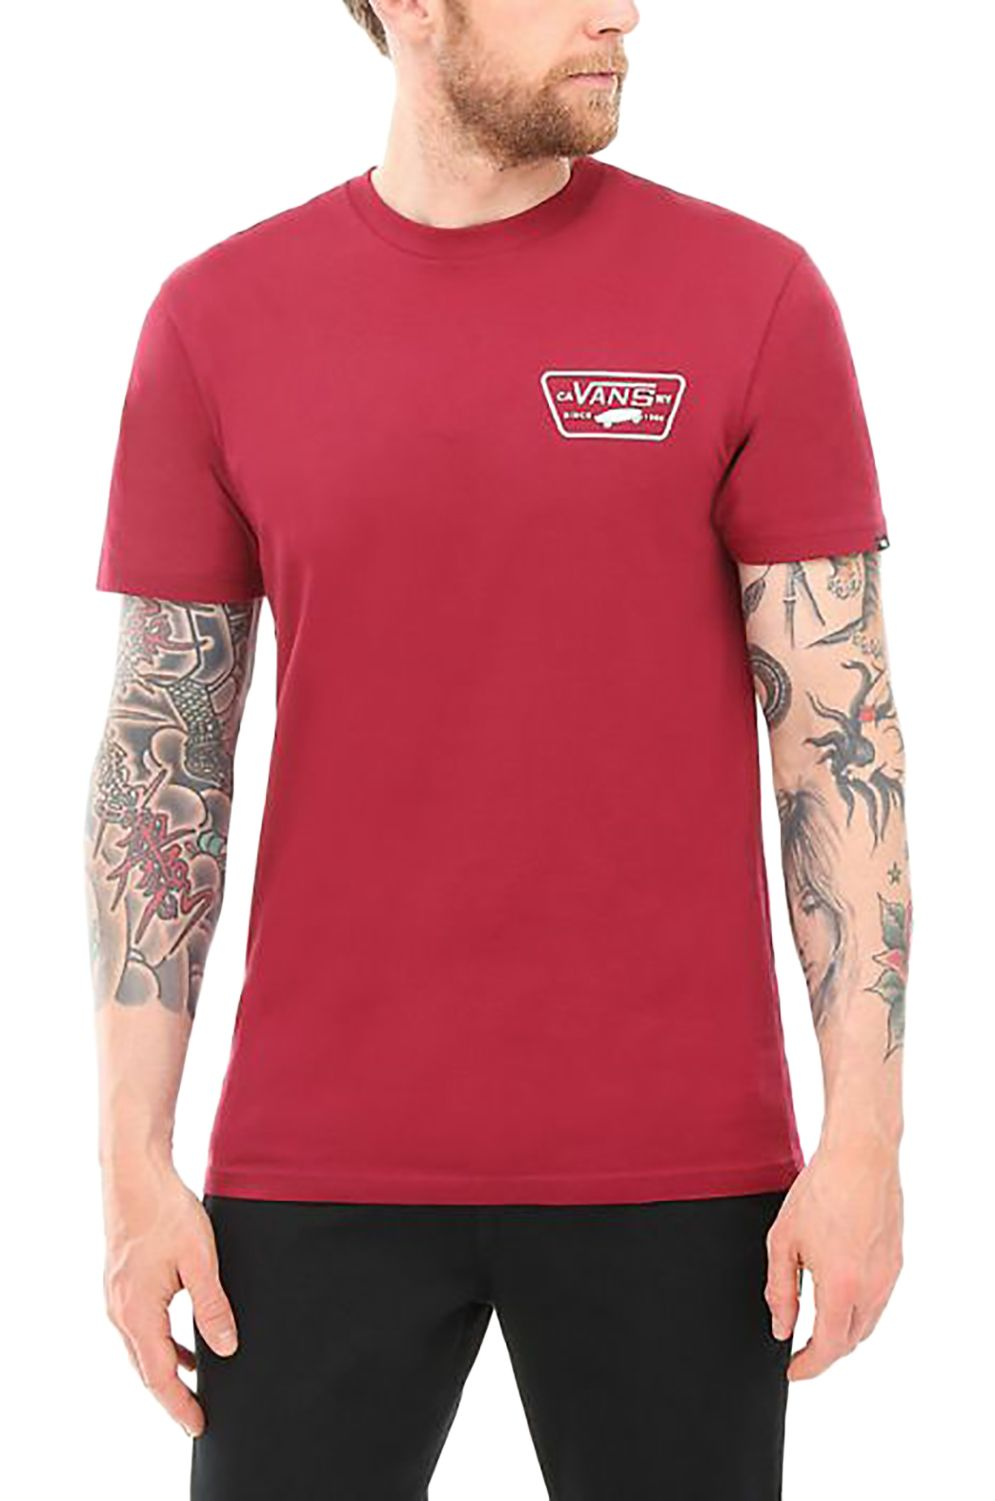 4a7a7a694 T-Shirt Vans FULL PATCH BACK Rhumba Red White